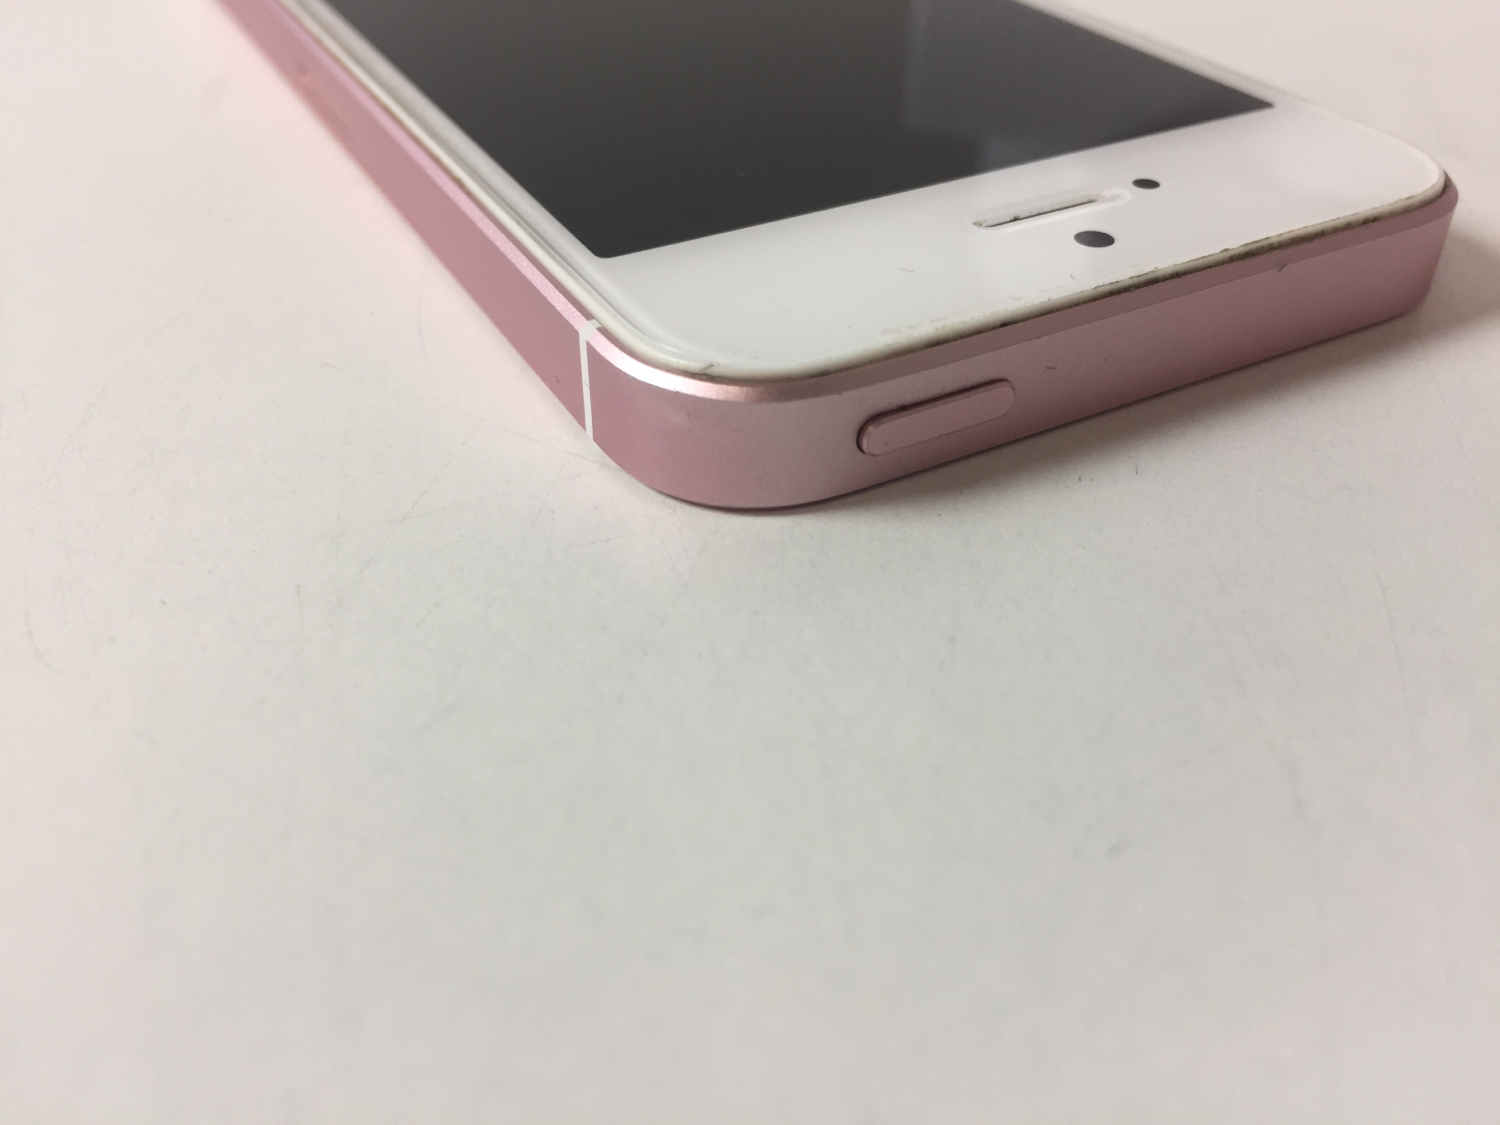 iPhone SE 16GB, 16GB, Rose Gold, bild 3